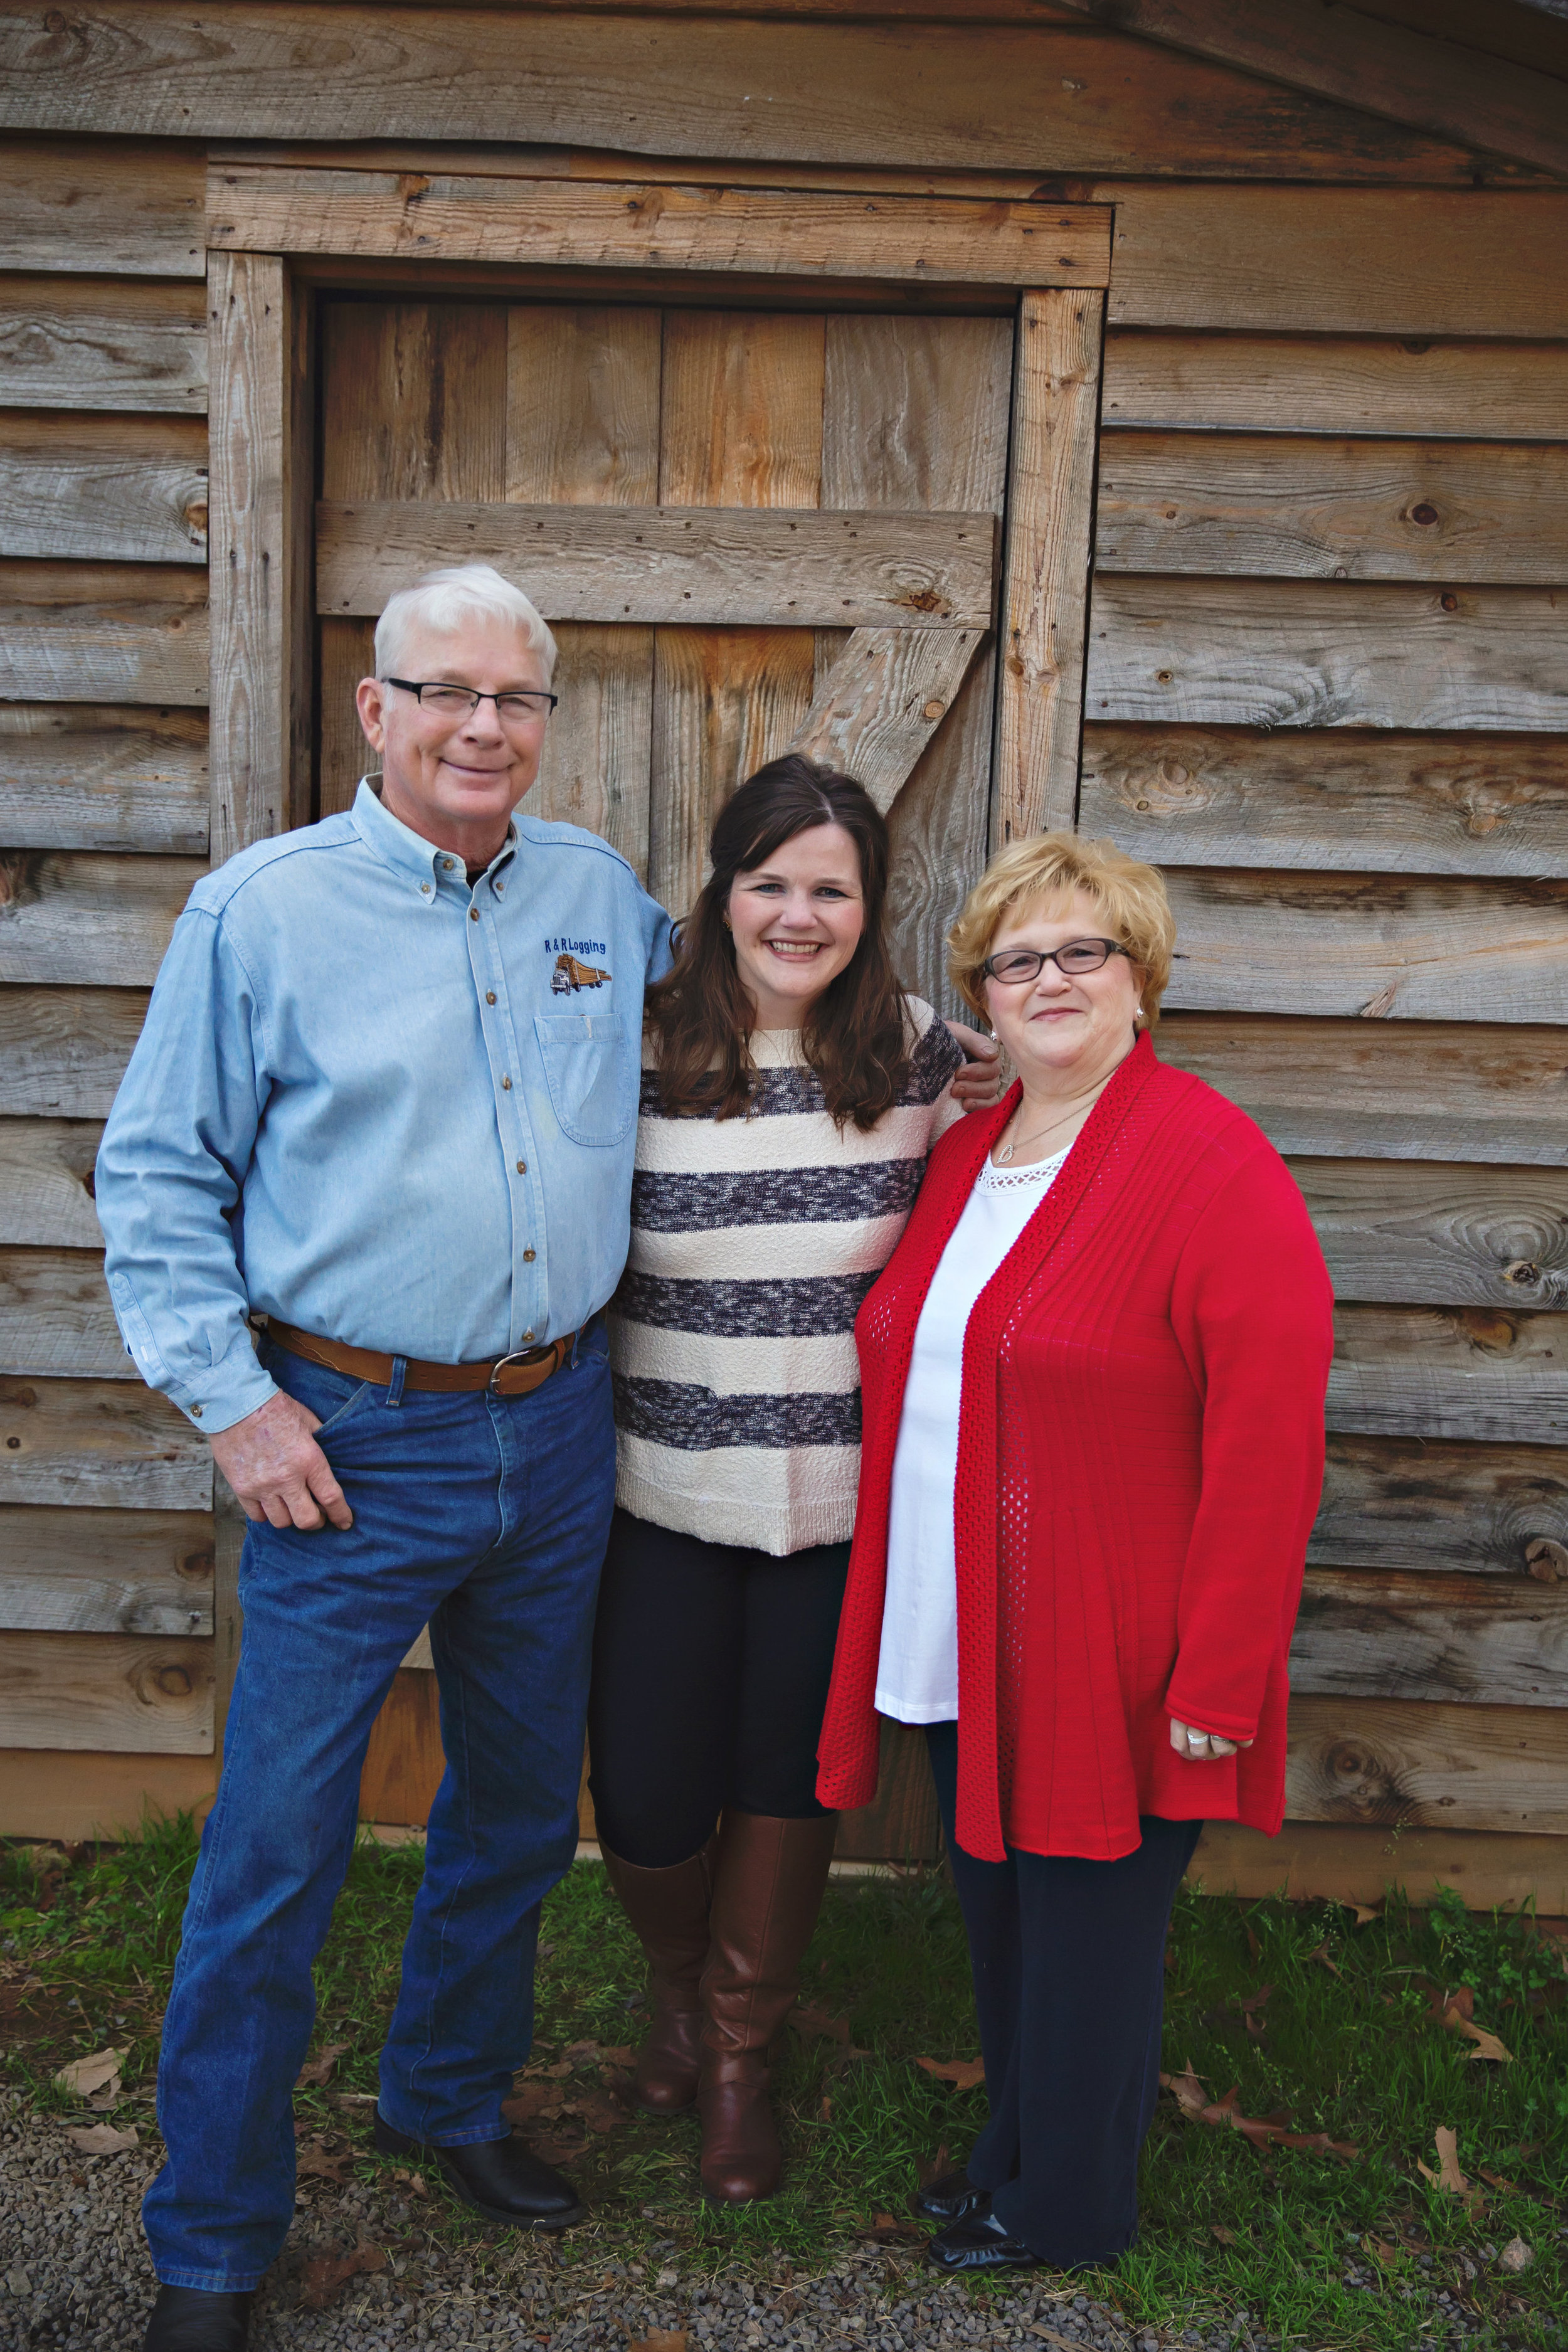 Deanna with her dad, Ray and her mom, Angela. Iron Station, North Carolina - 2015